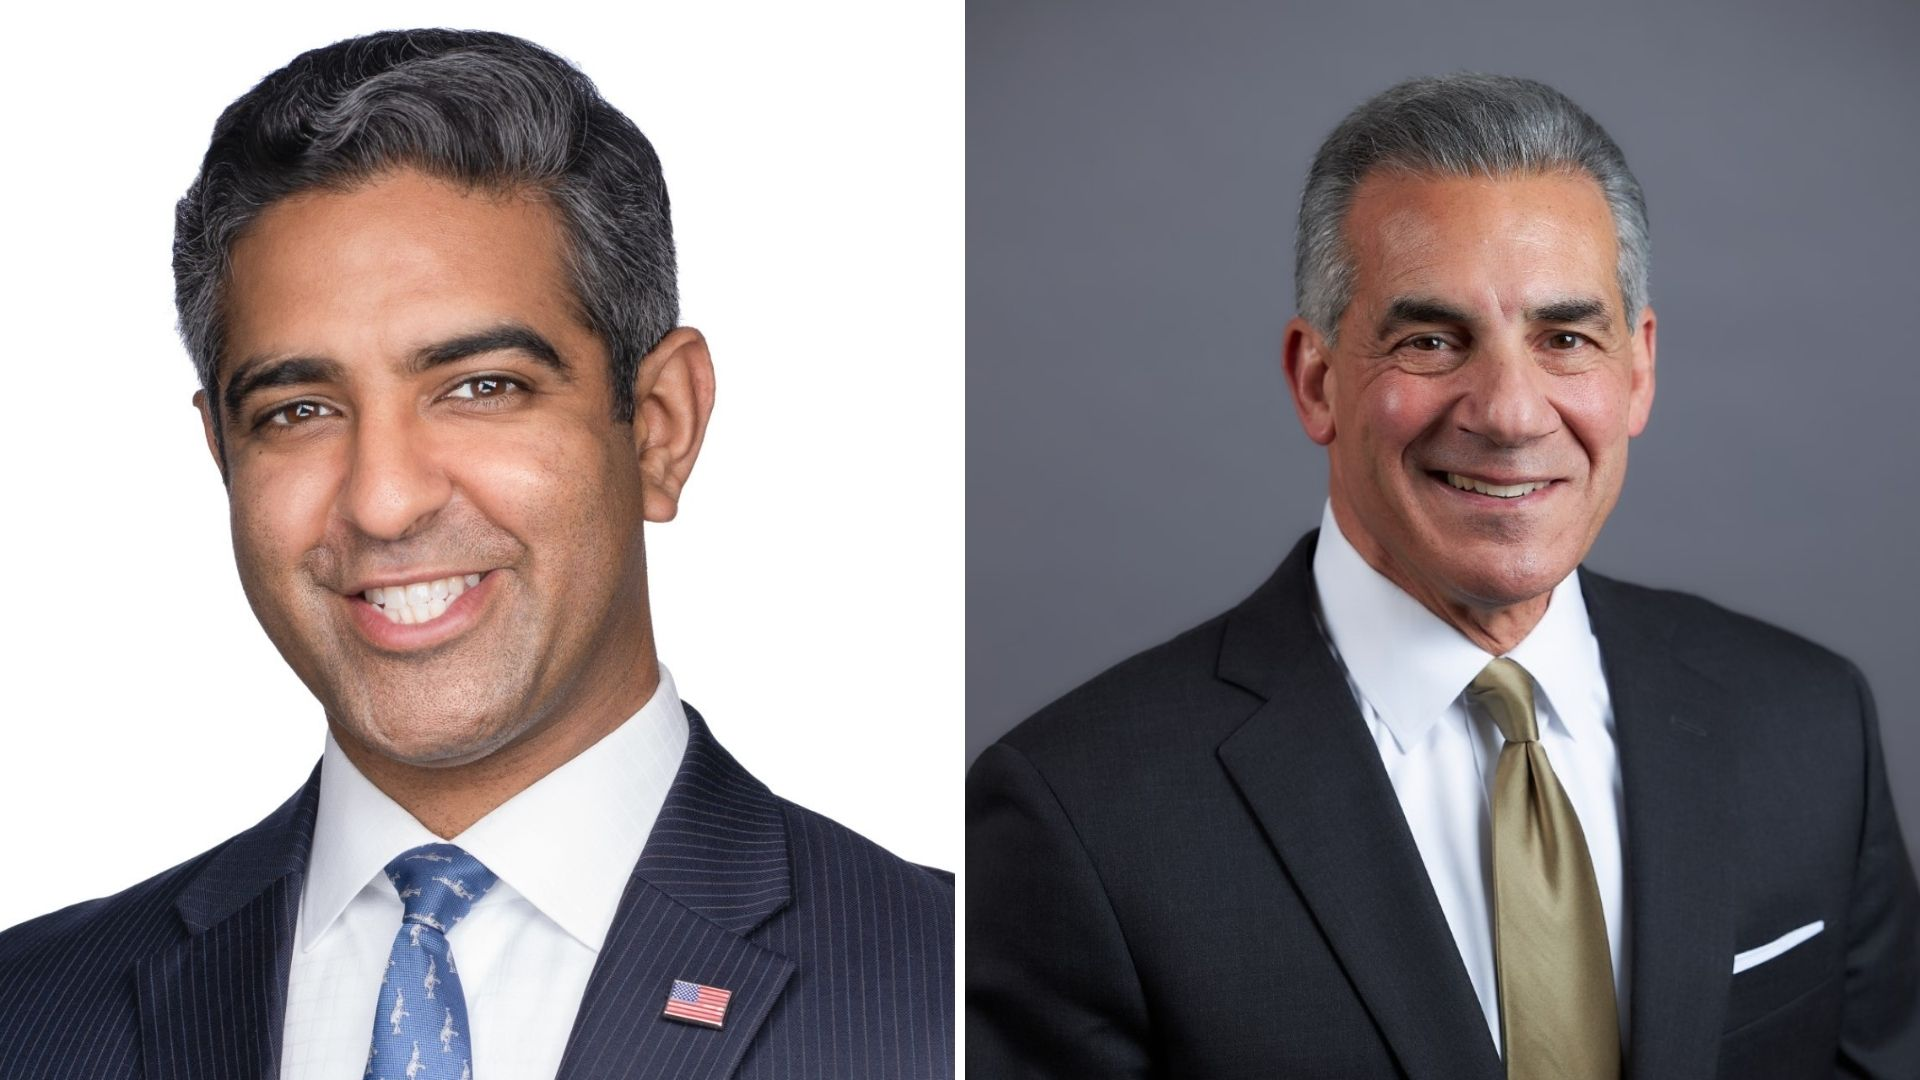 NJ candidates for governor Hirsh Singh, left, and Jack Ciattarelli